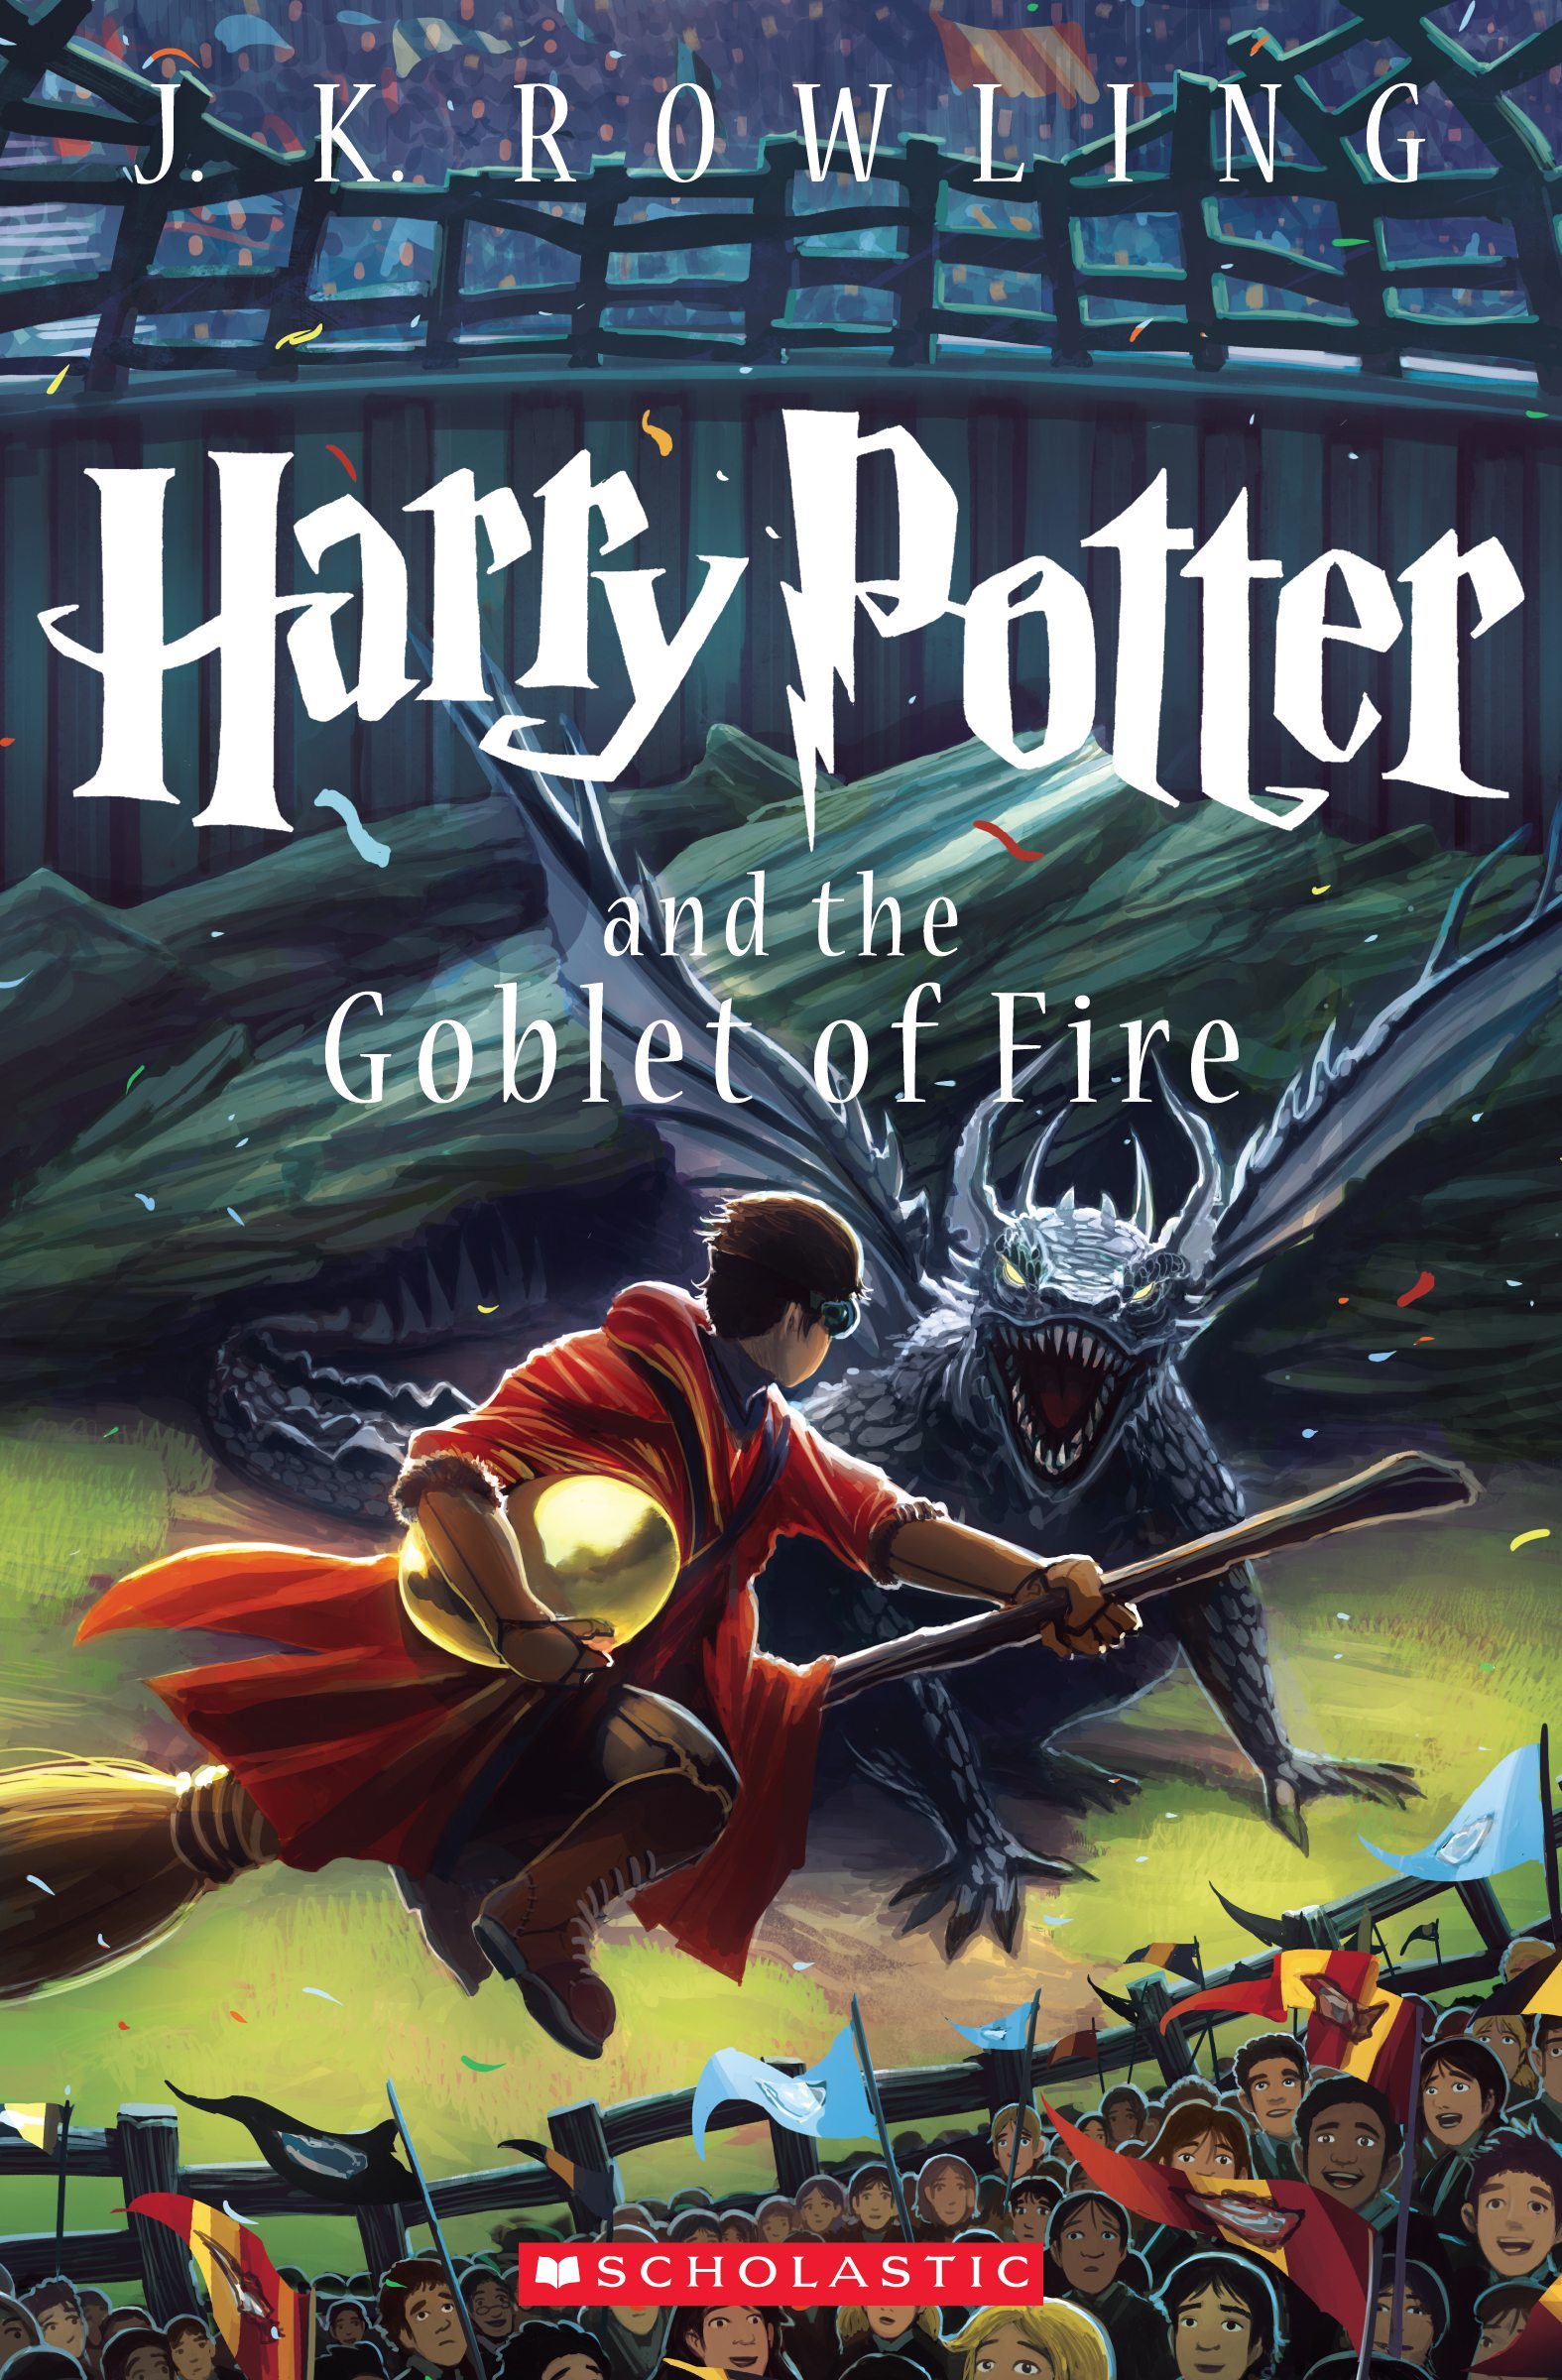 Harry Potter Book Covers ~ Final harry potter cover reveal today at scholastic store